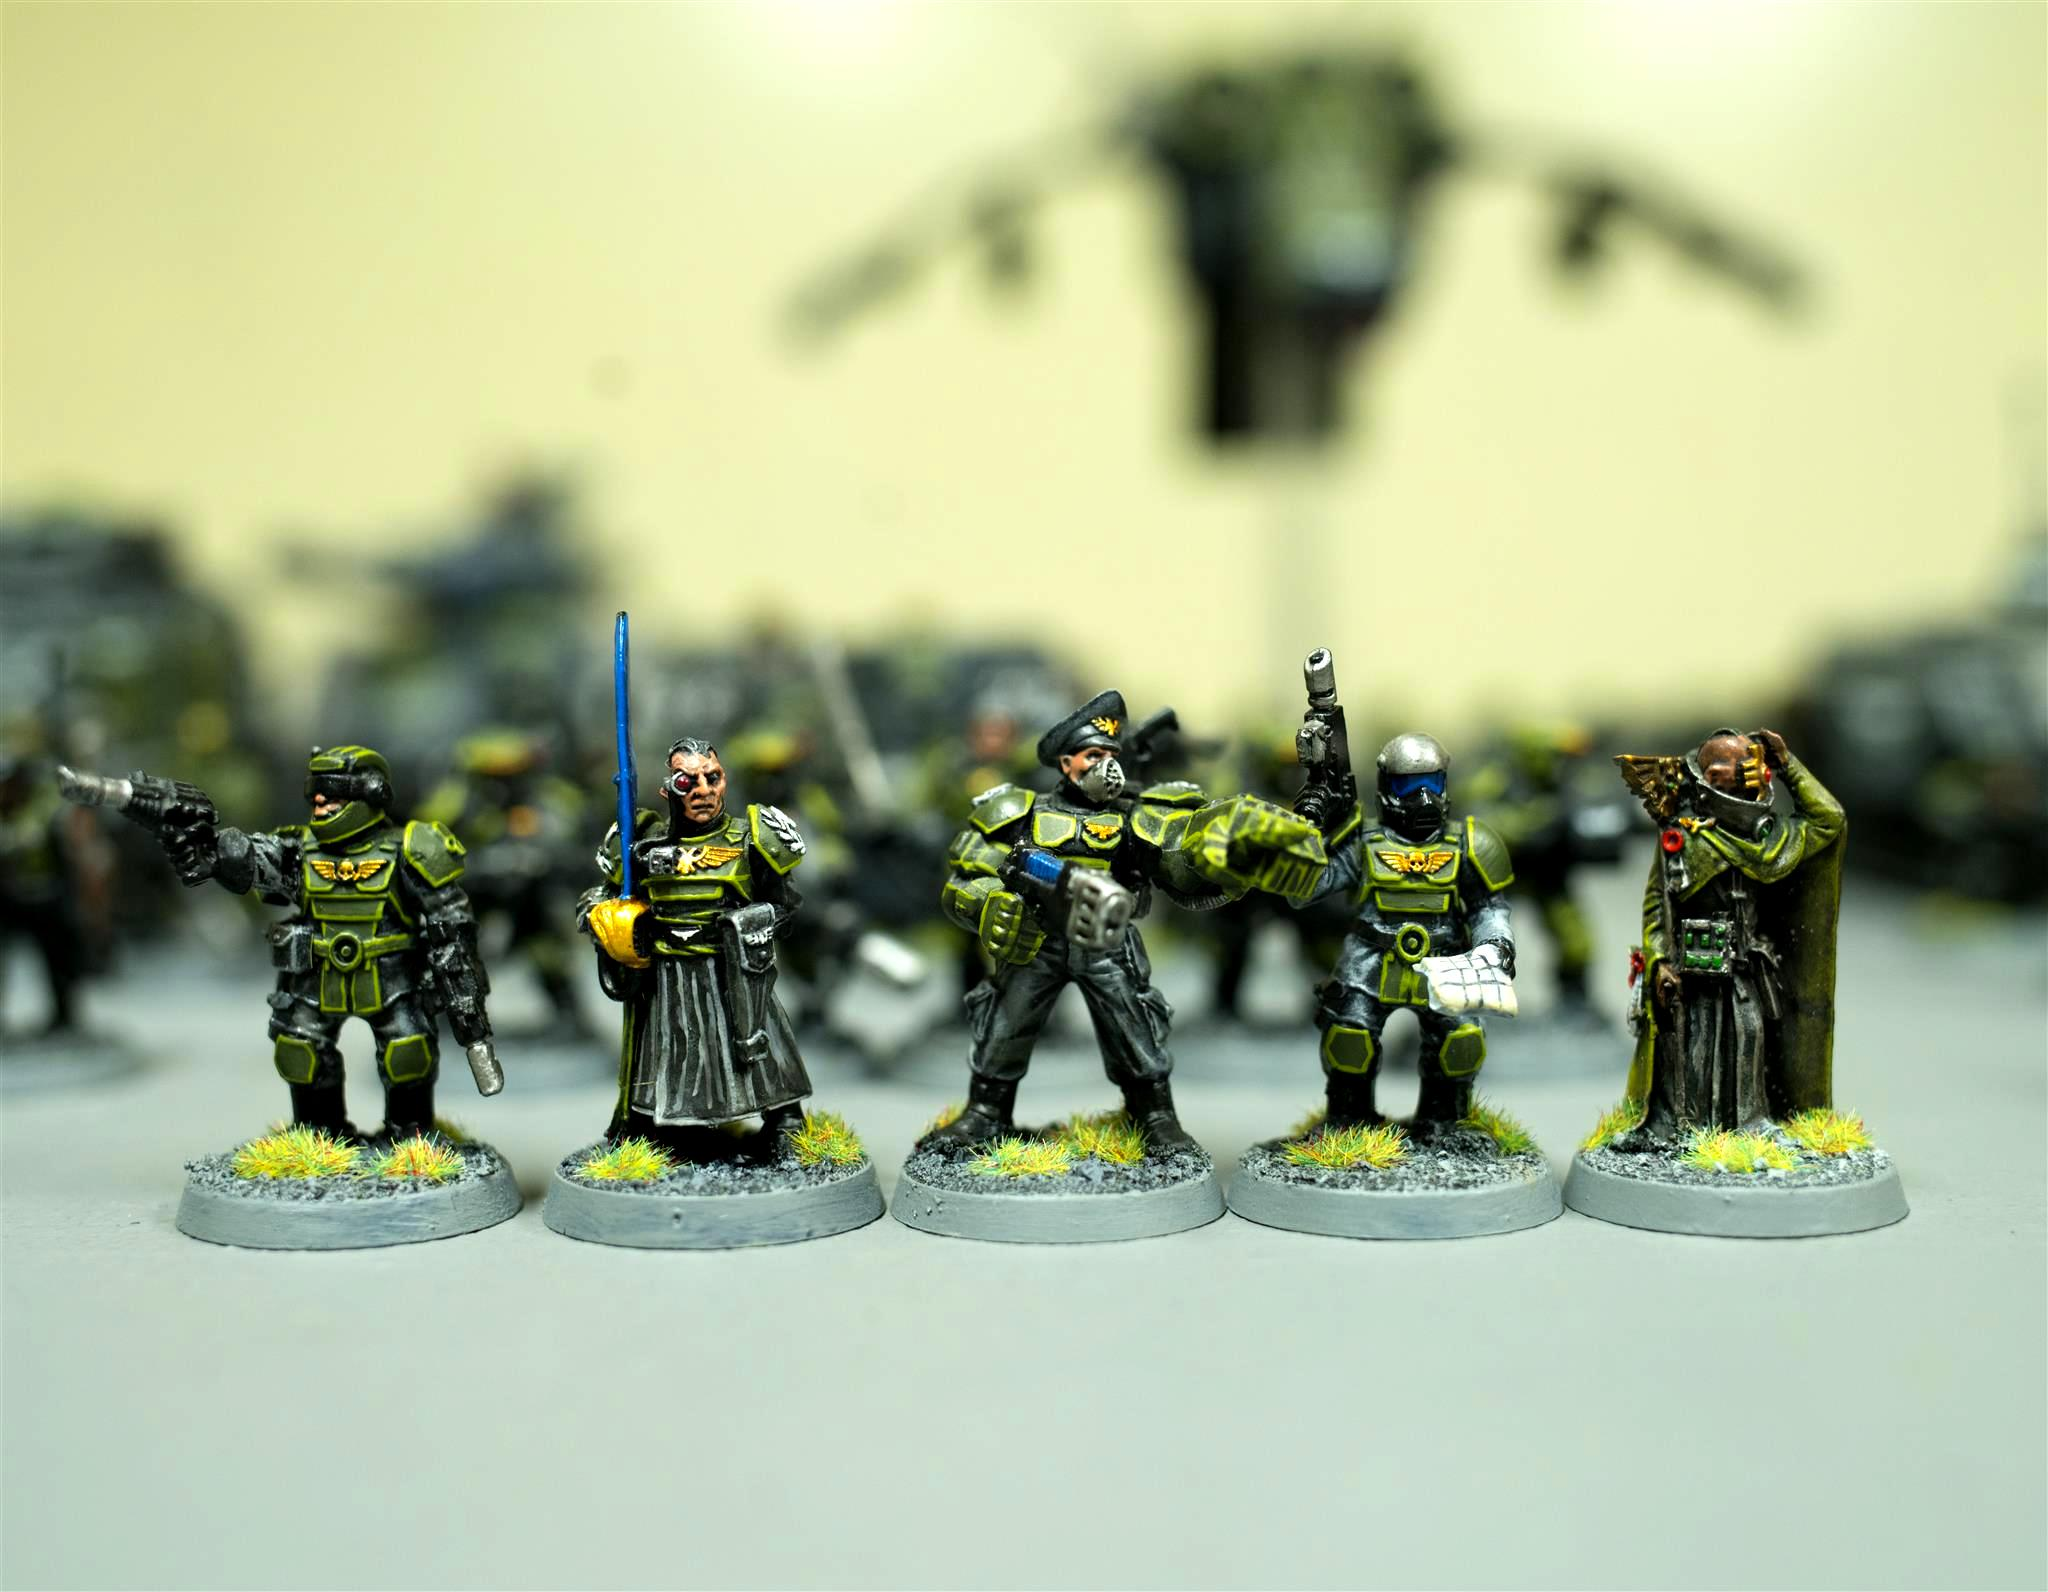 317th Sathanas Hoplites, Astra Militarum, Astropath, Bodyguard, Bodyguards, Colonel, Command Squad, Guard, Imp Guard, Imperial Guard, Iron Hand Straken, Master Of The Fleet